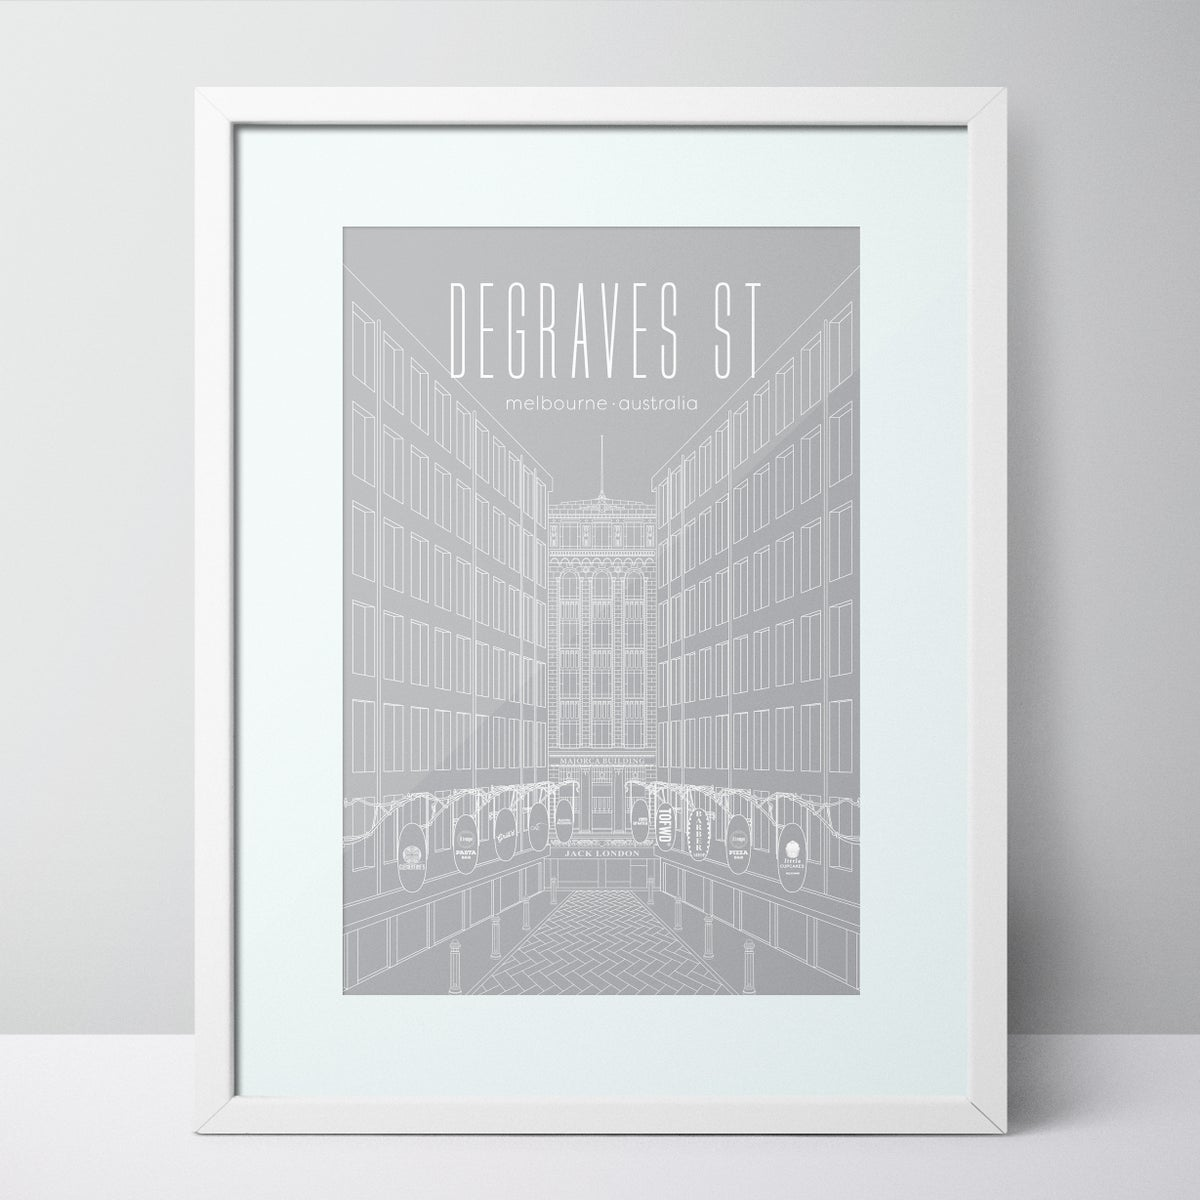 Image of Degraves Street - Melbourne